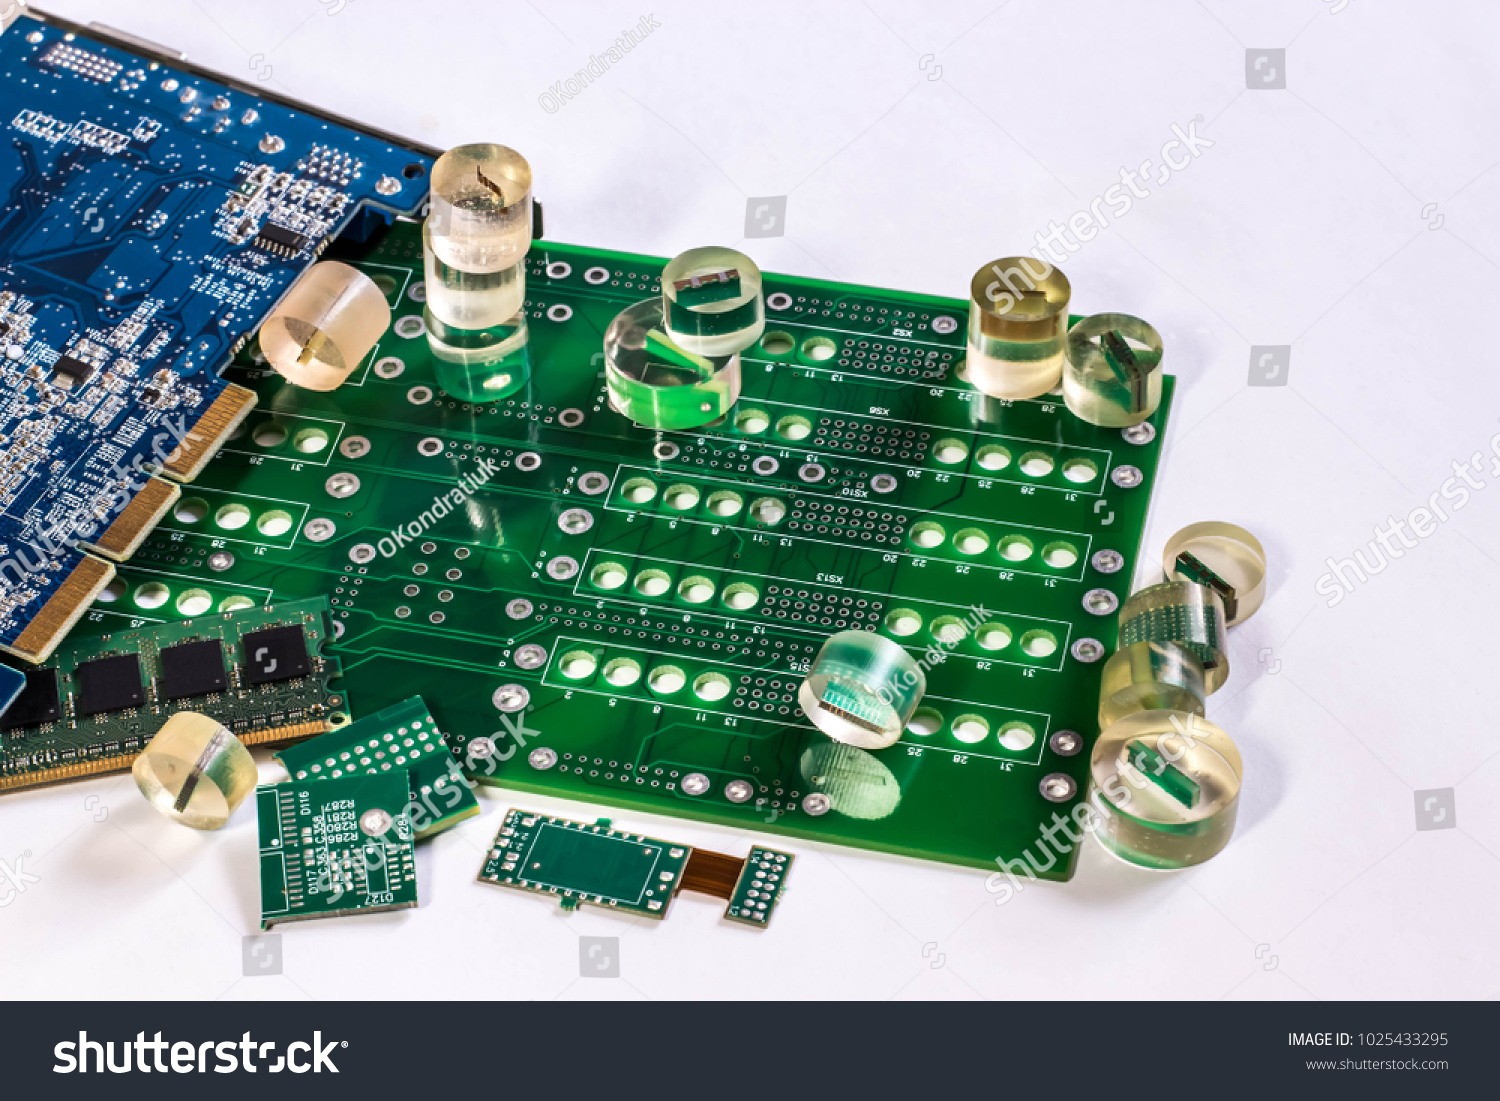 Printed Circuit Boards Pcb Samples Epoxy Stock Photo Edit Now Stockfoto Board Used In Industrial Electronic And Resin